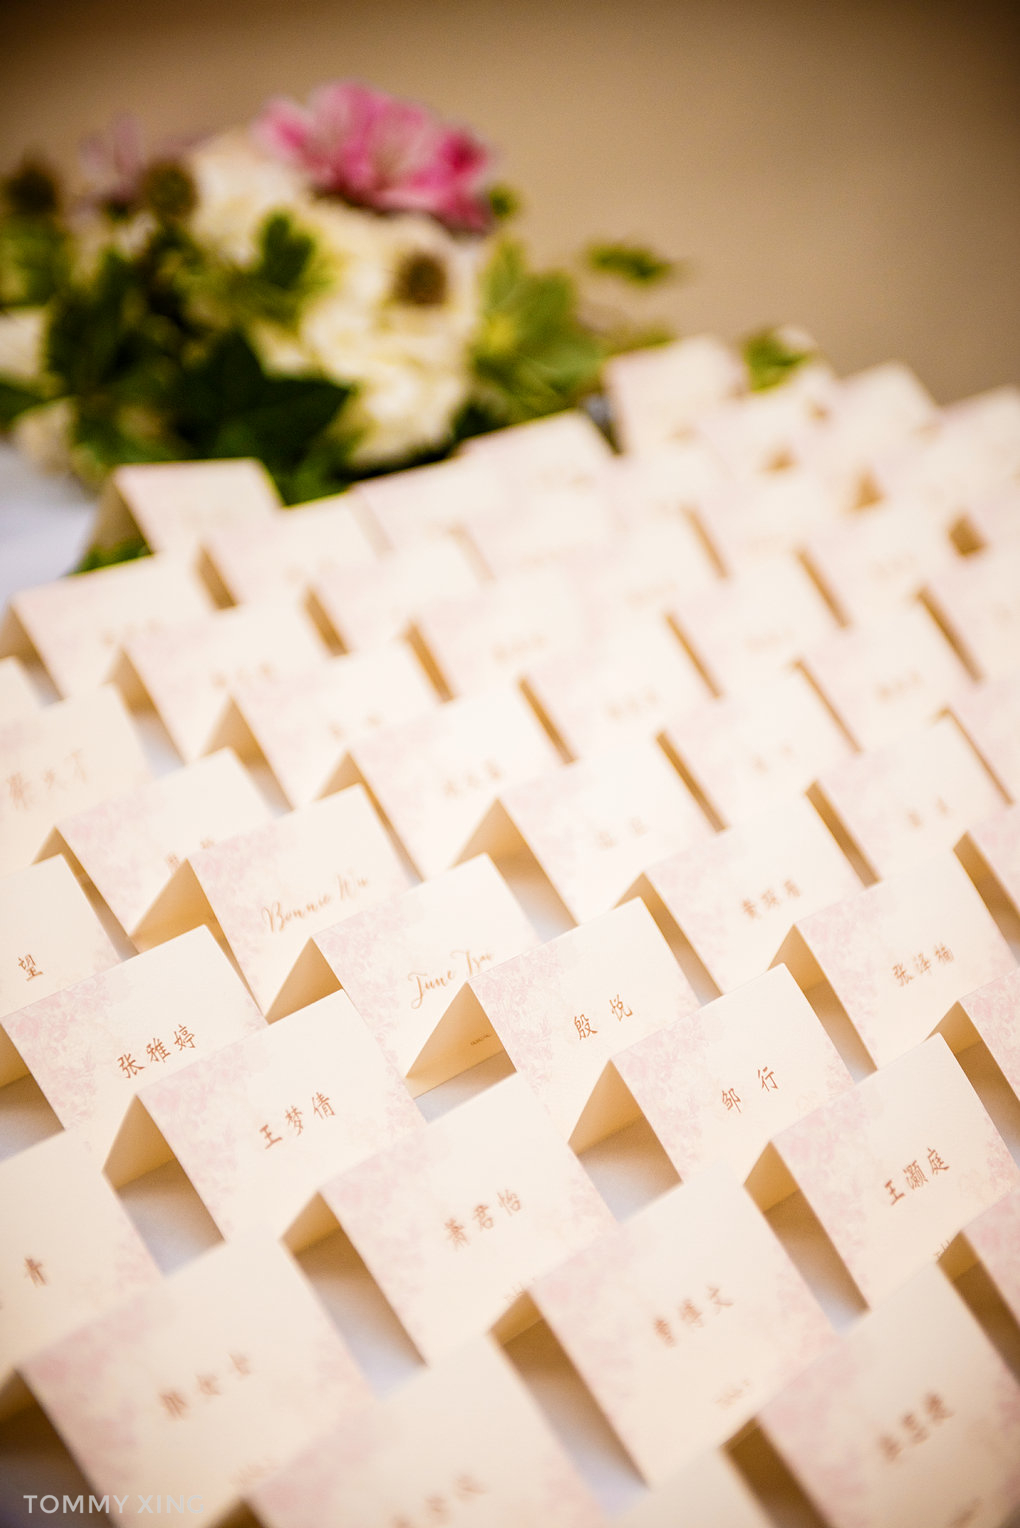 IL CIELO WEDDING Beverly Hills by Tommy Xing Photography 062.jpg